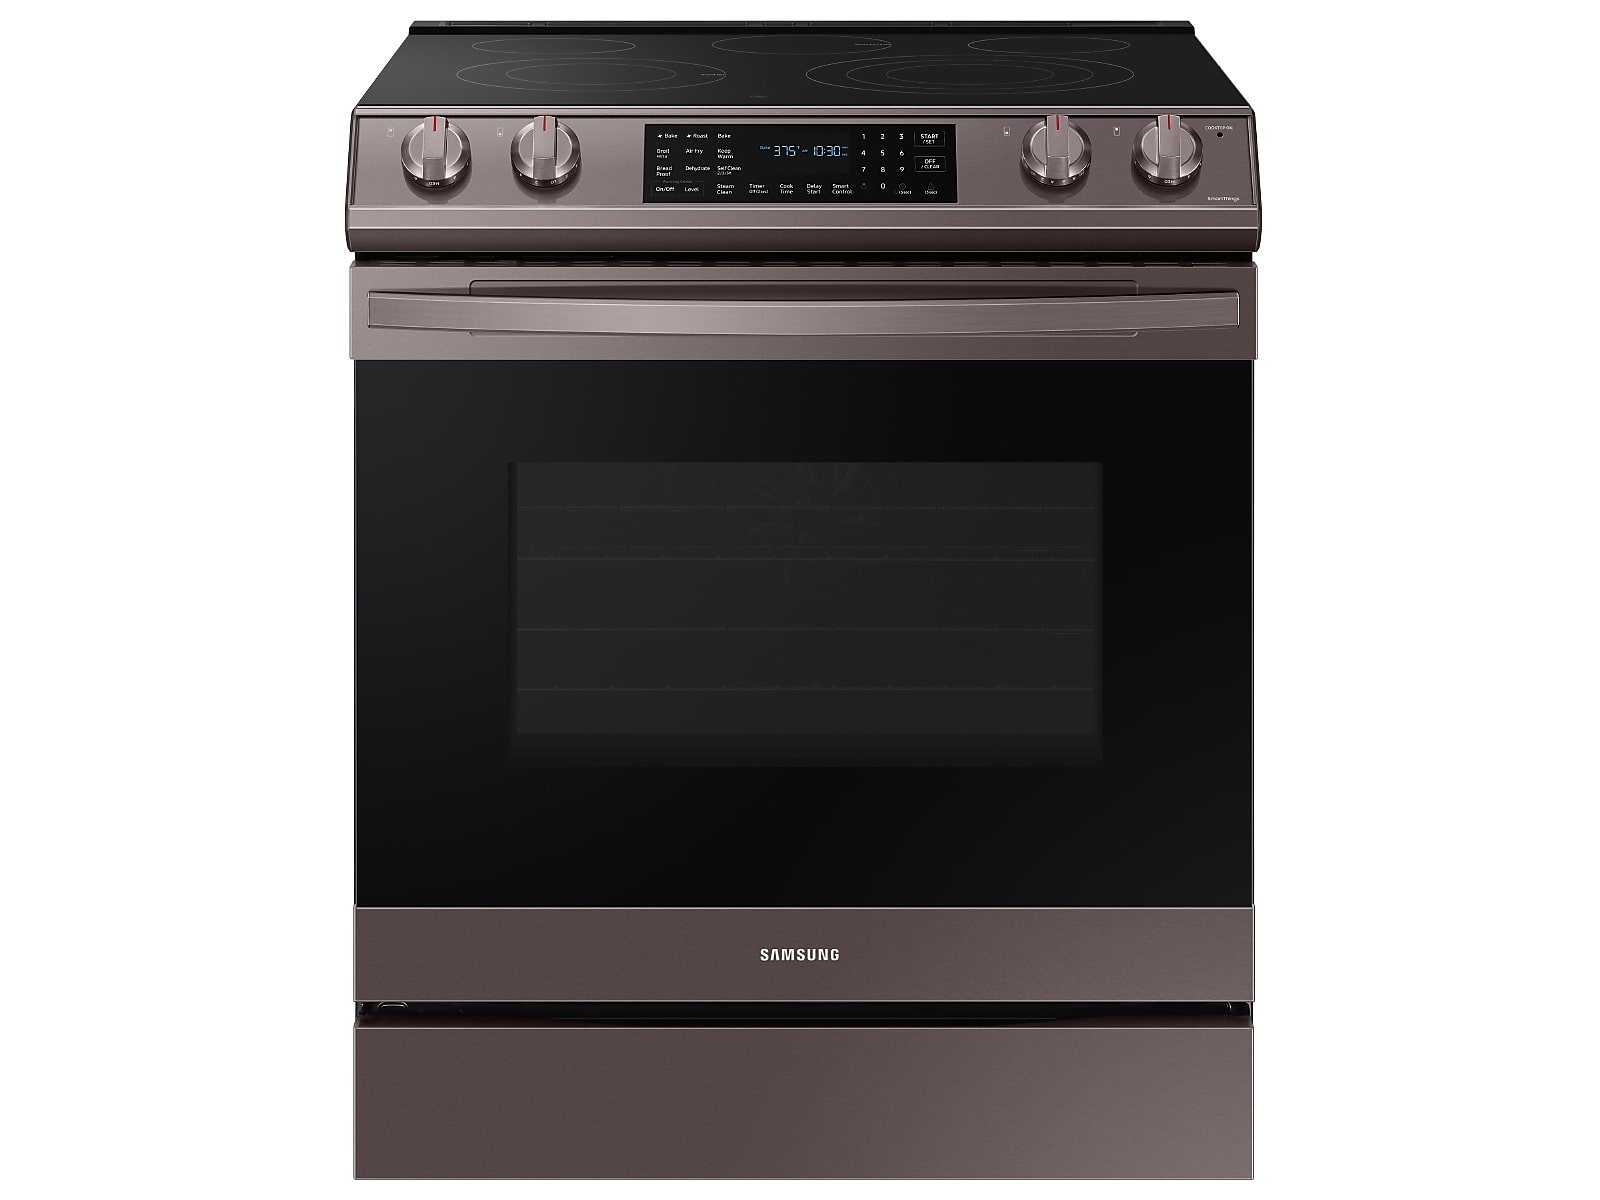 Samsung 6.3 cu. ft. Smart Slide-in Electric Range with Air Fry in Tuscan Stainless Steel(NE63T8511ST/AA)